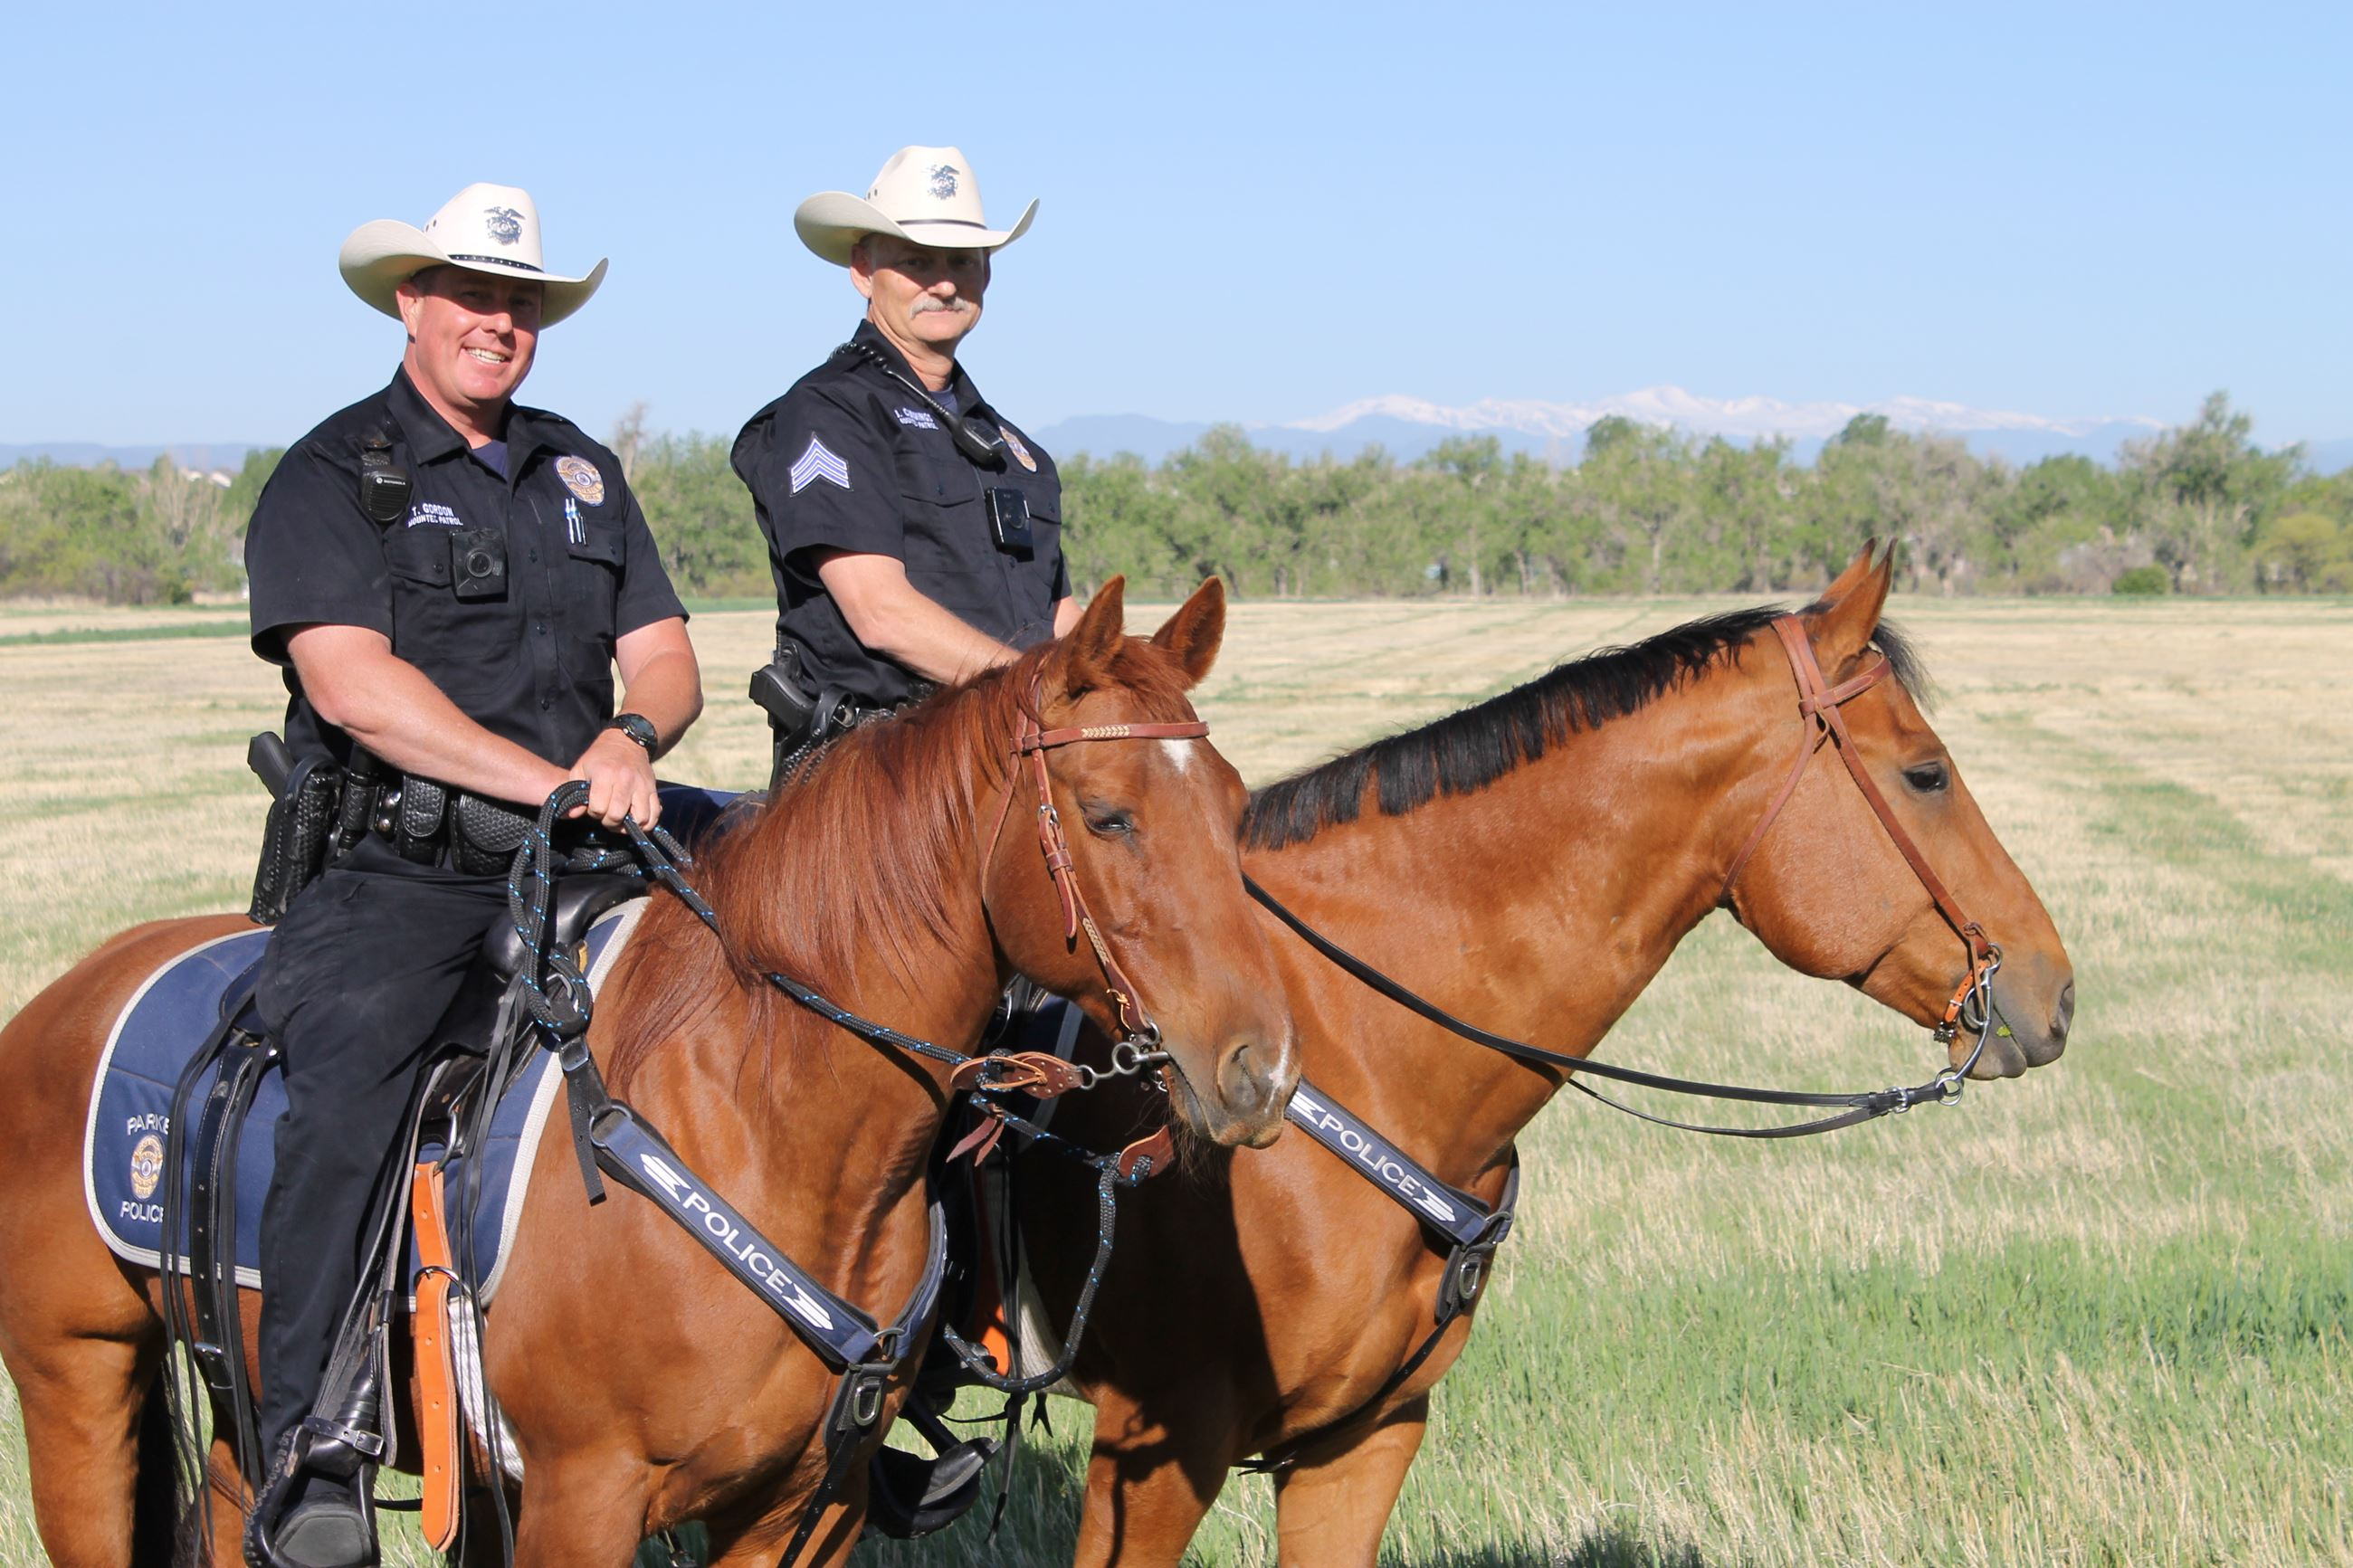 Sergeant Joe Cummings and Officer Troy Gordon on their horses